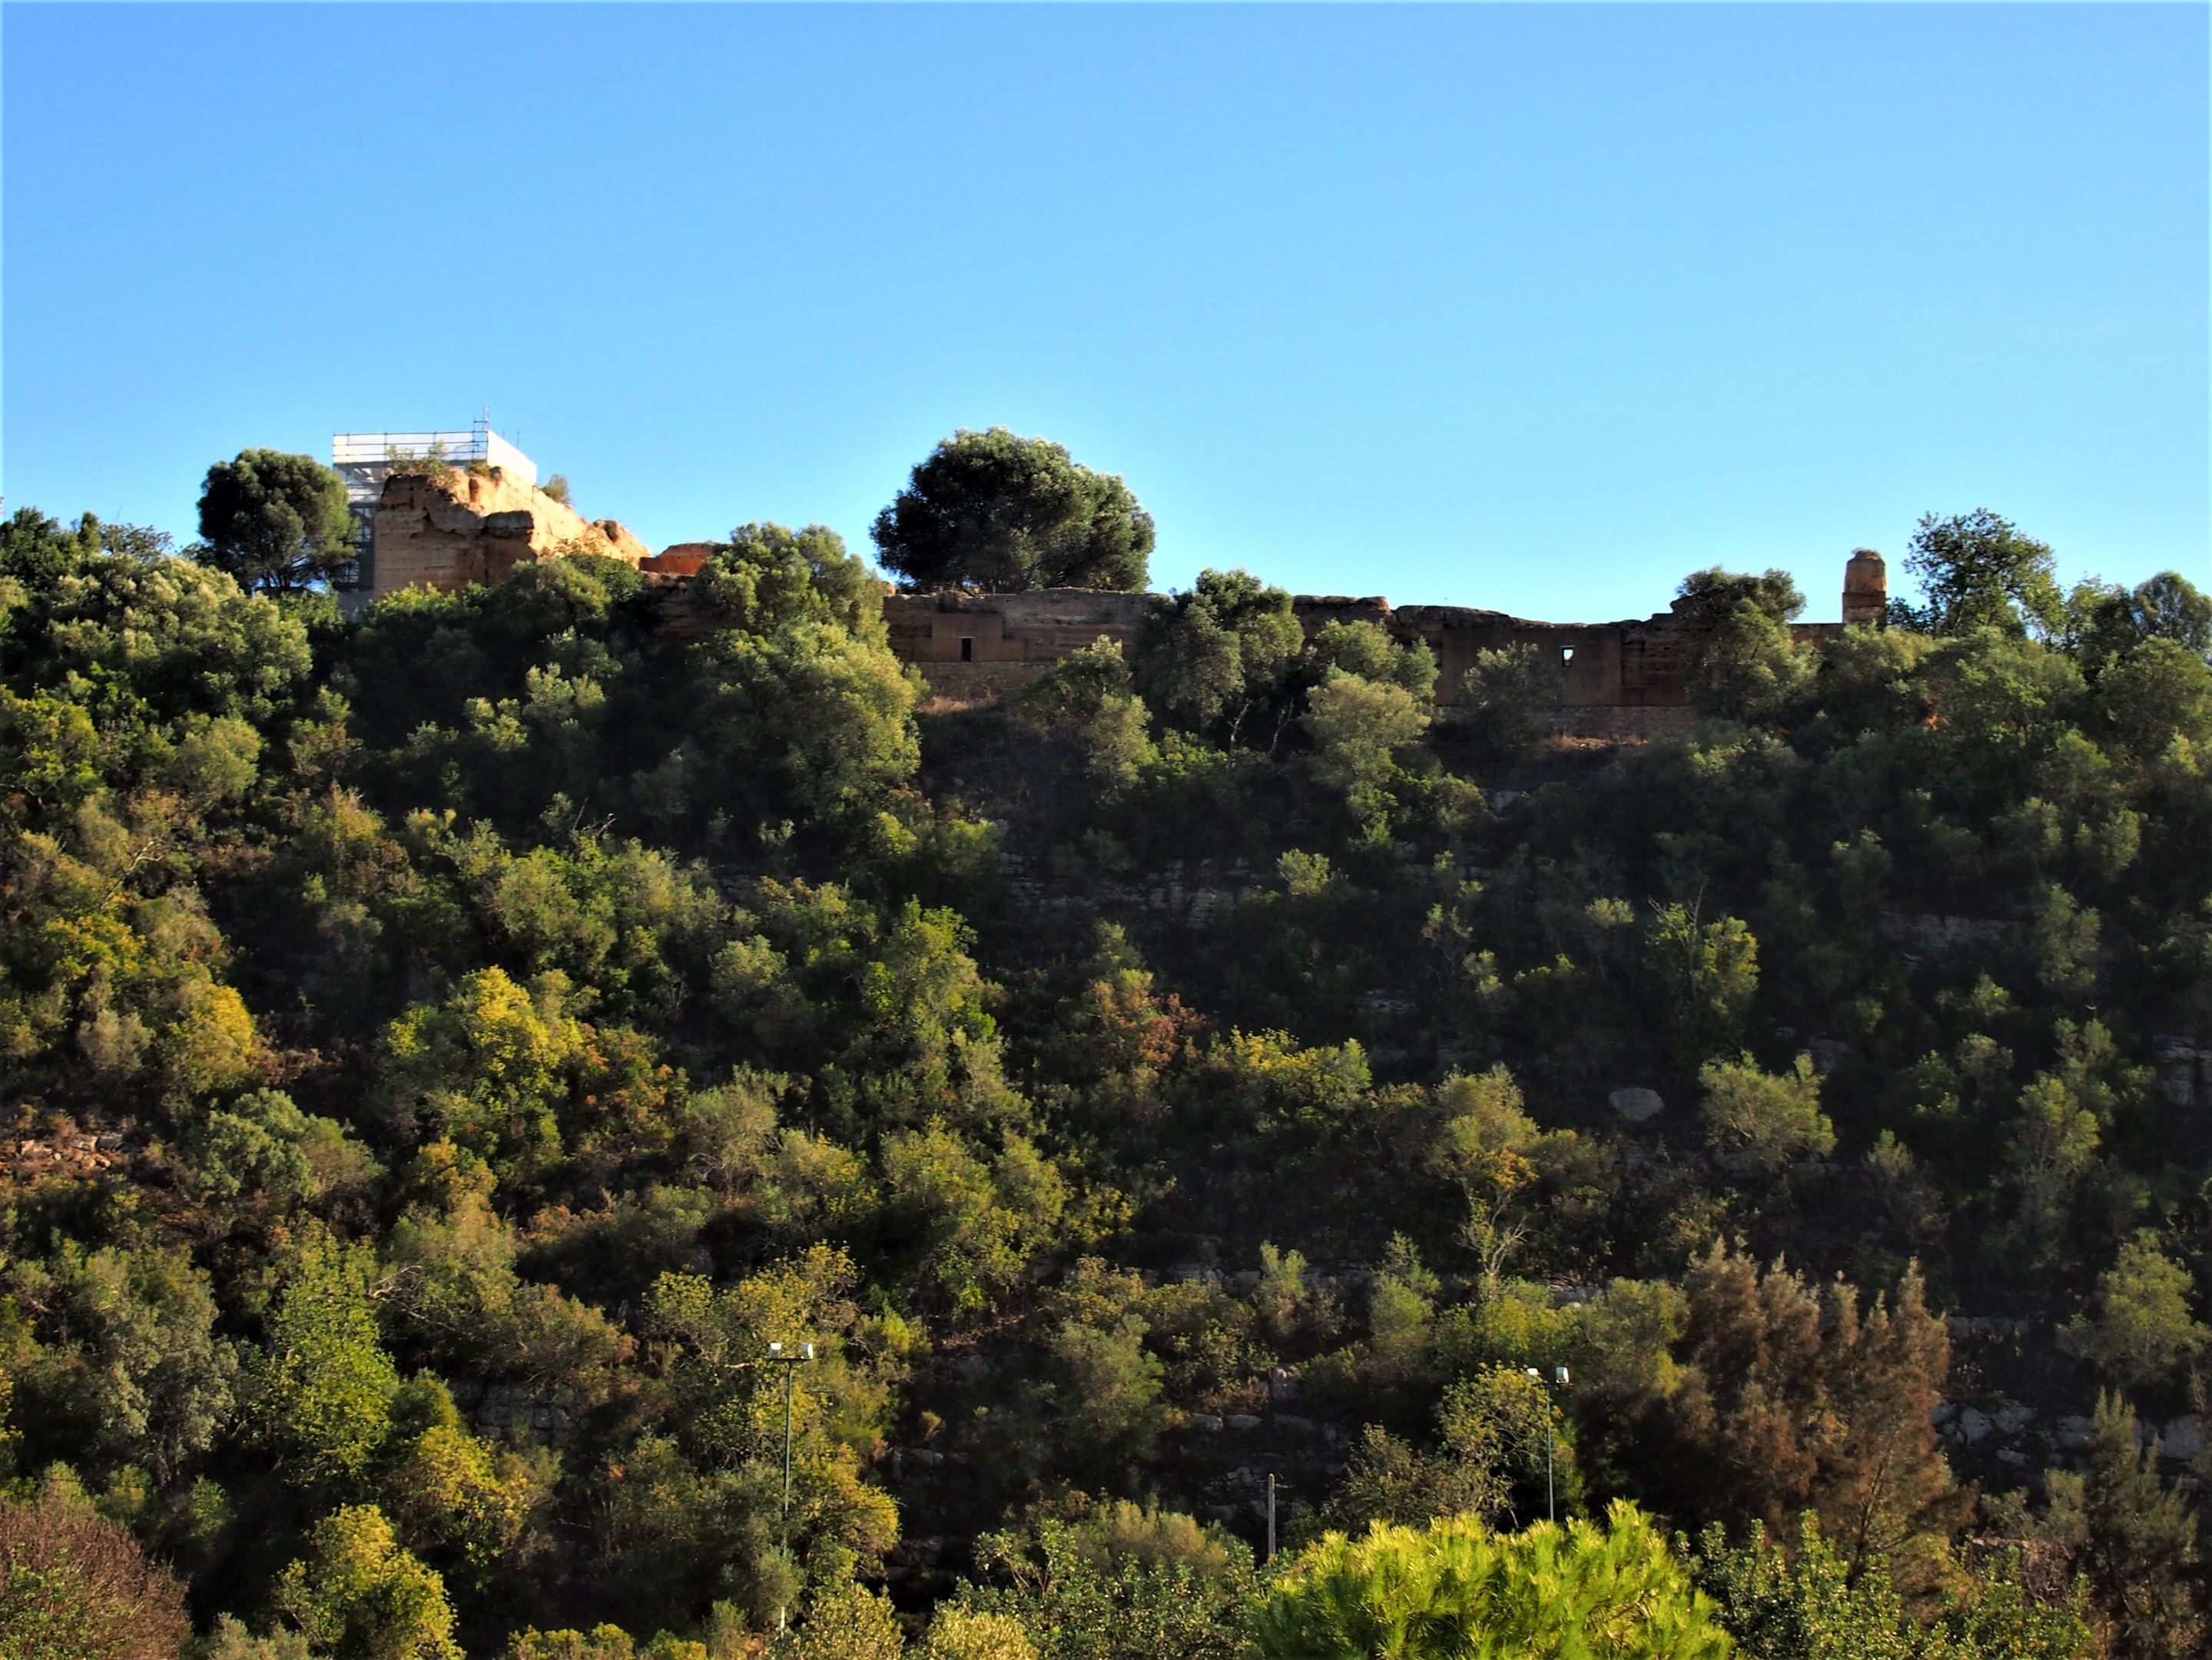 The remains of the Castle of Paderne at the top of the hill.